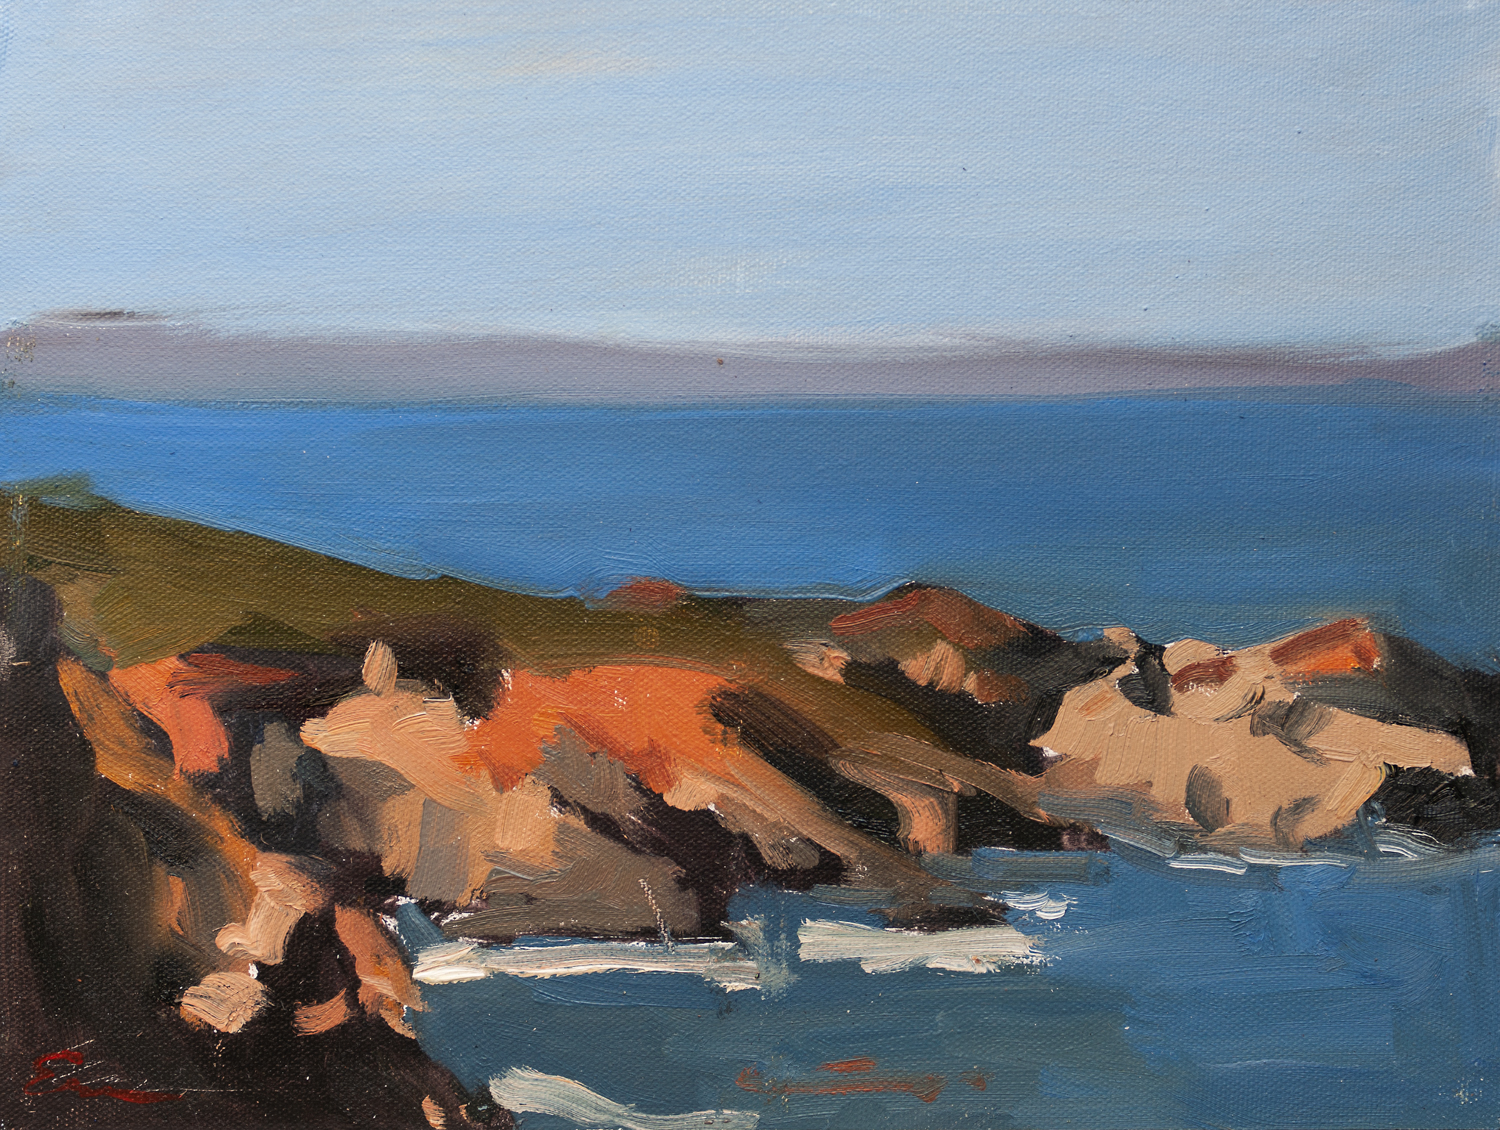 Cliffs at Soberanes Point